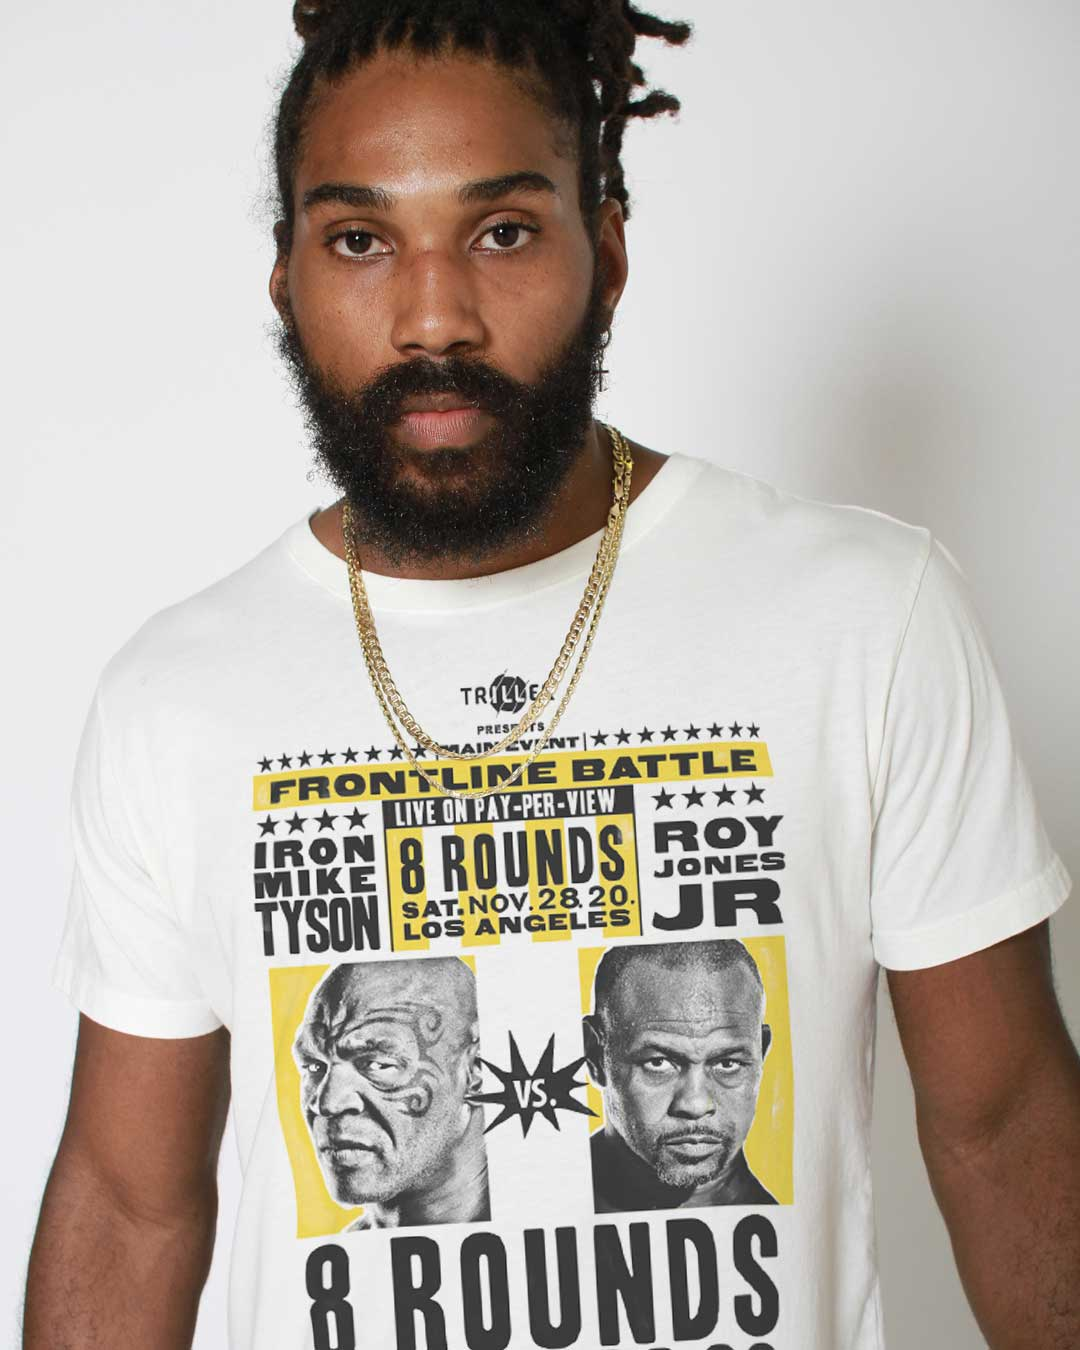 Tyson vs Jones Triller Event Tee - Roots of Inc dba Roots of Fight